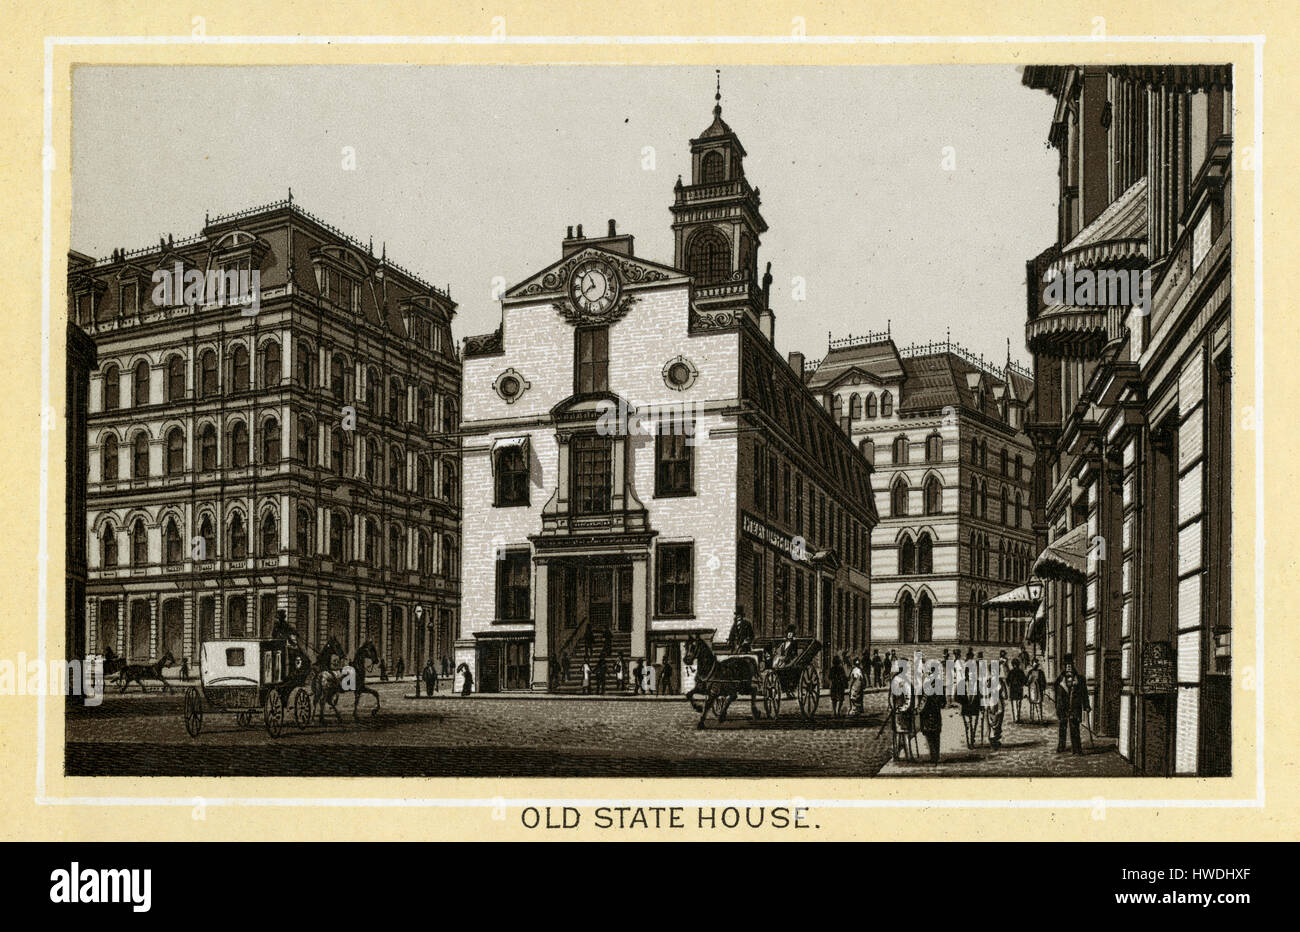 Antique 1883 monochromatic print from a souvenir album, showing the Old State House in Boston, Massachusetts. The - Stock Image